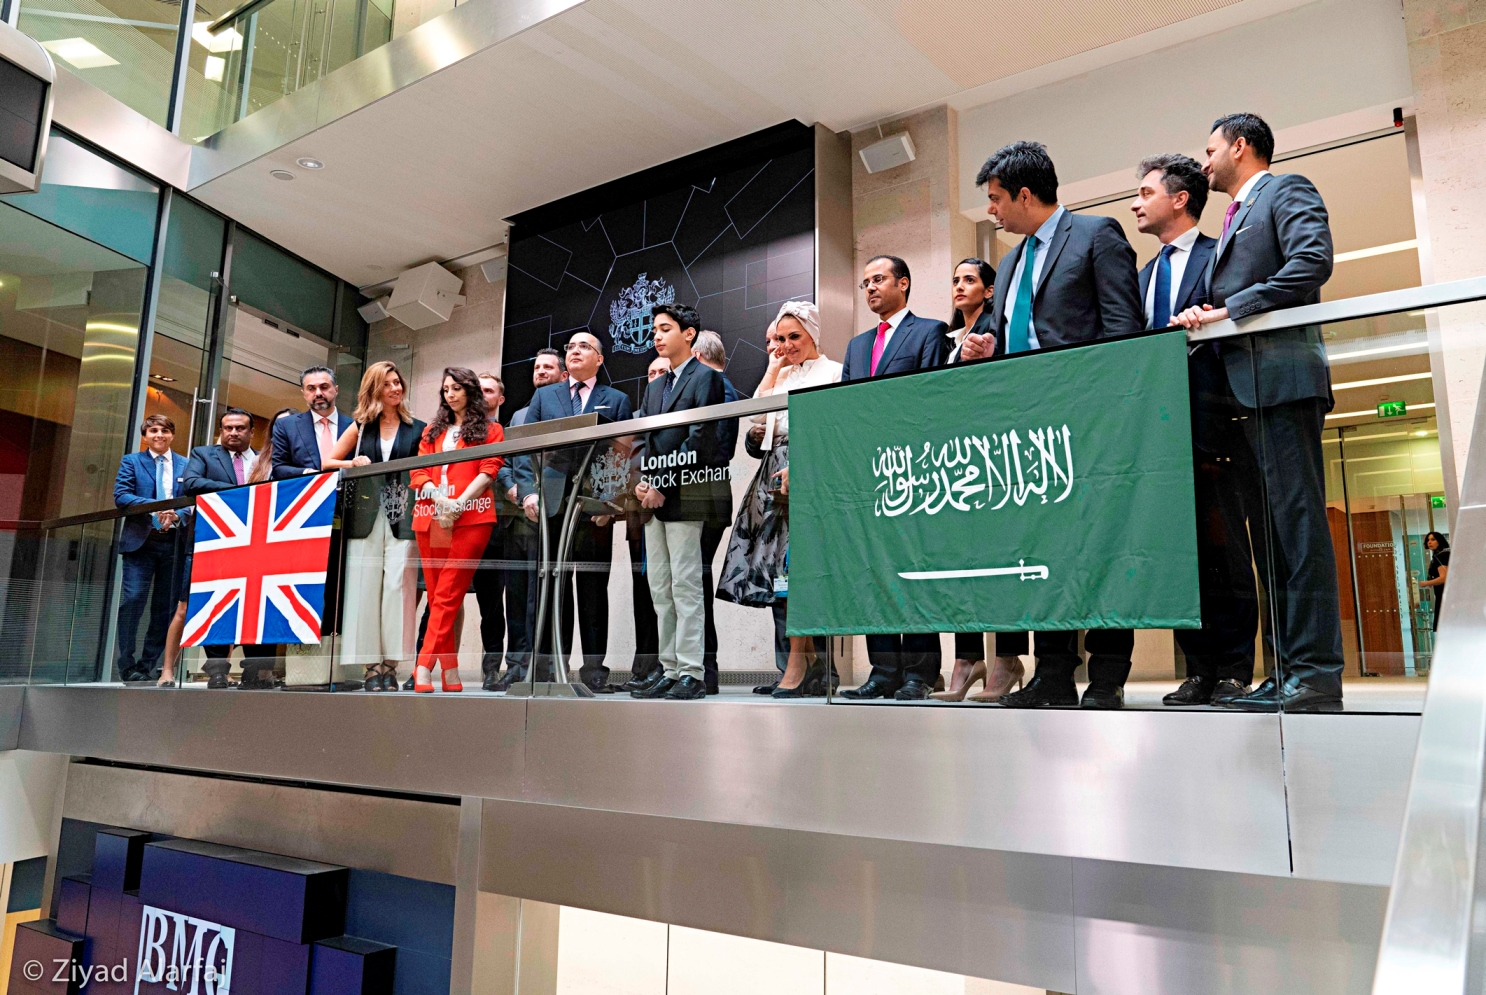 A NEW ERA FOR UK-SAUDI ARABIA RELATIONS WITH FRIENDLY POLO MATCH AND FIRST INTERNATIONAL FORUM ON SAUDI VISION 2030 AT BMG SUMMER RETREAT